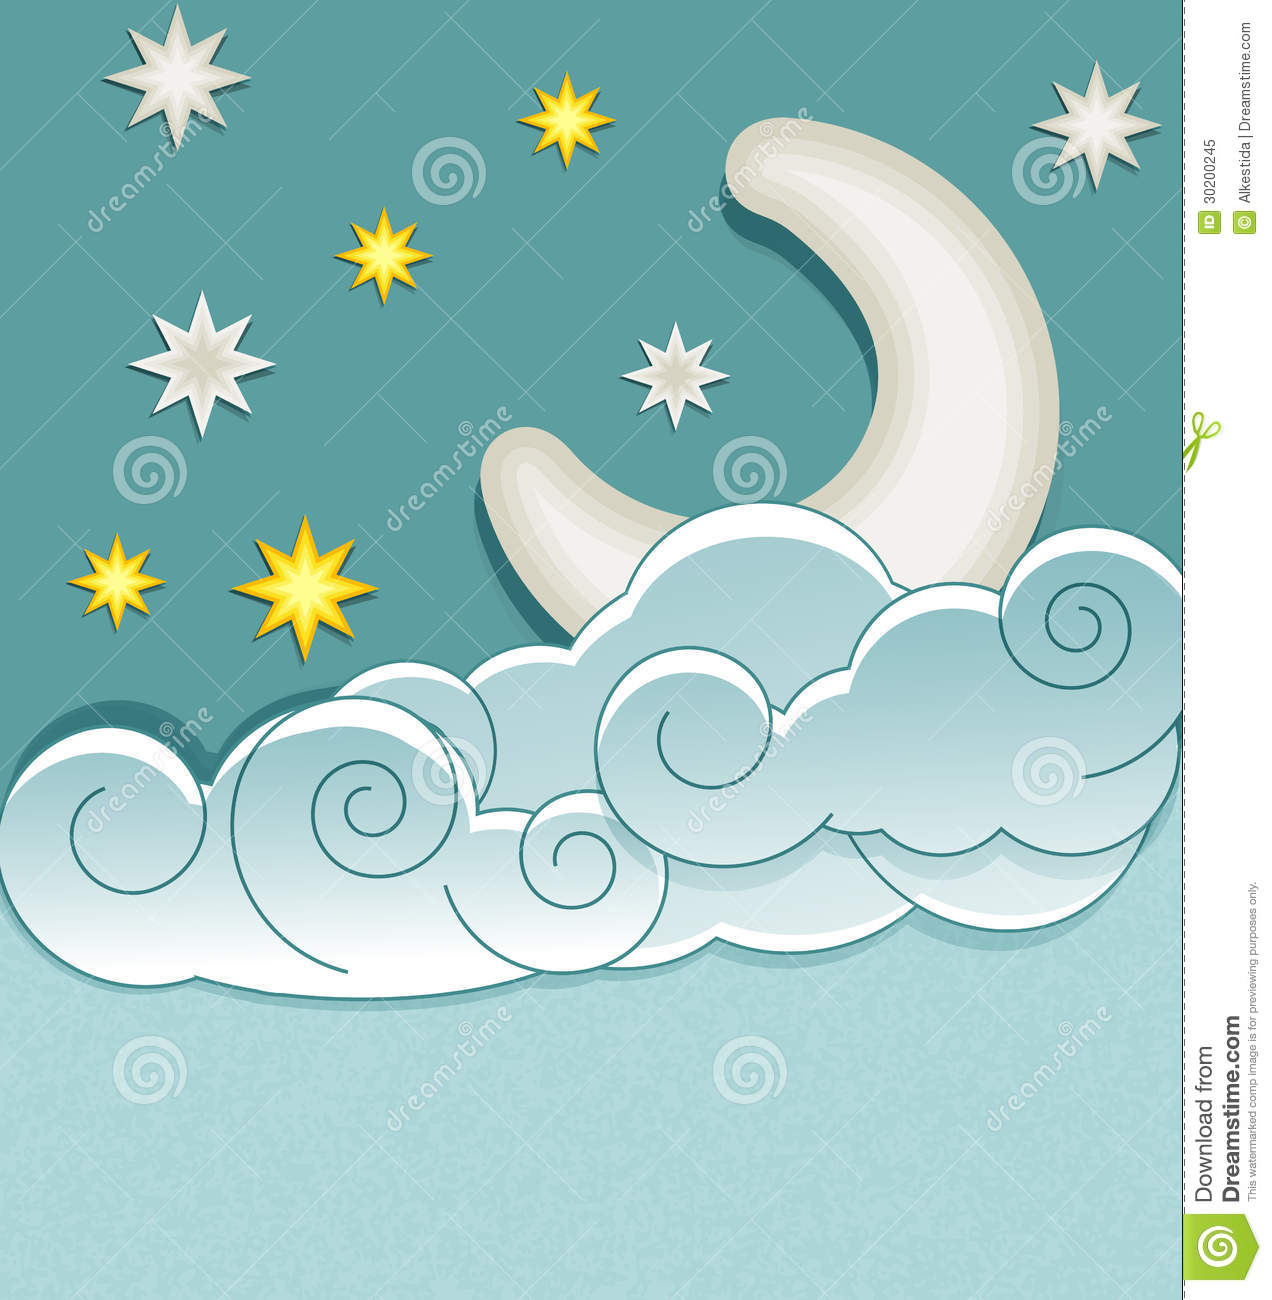 Vector Vintage Background With The Moon Stock Vector ...